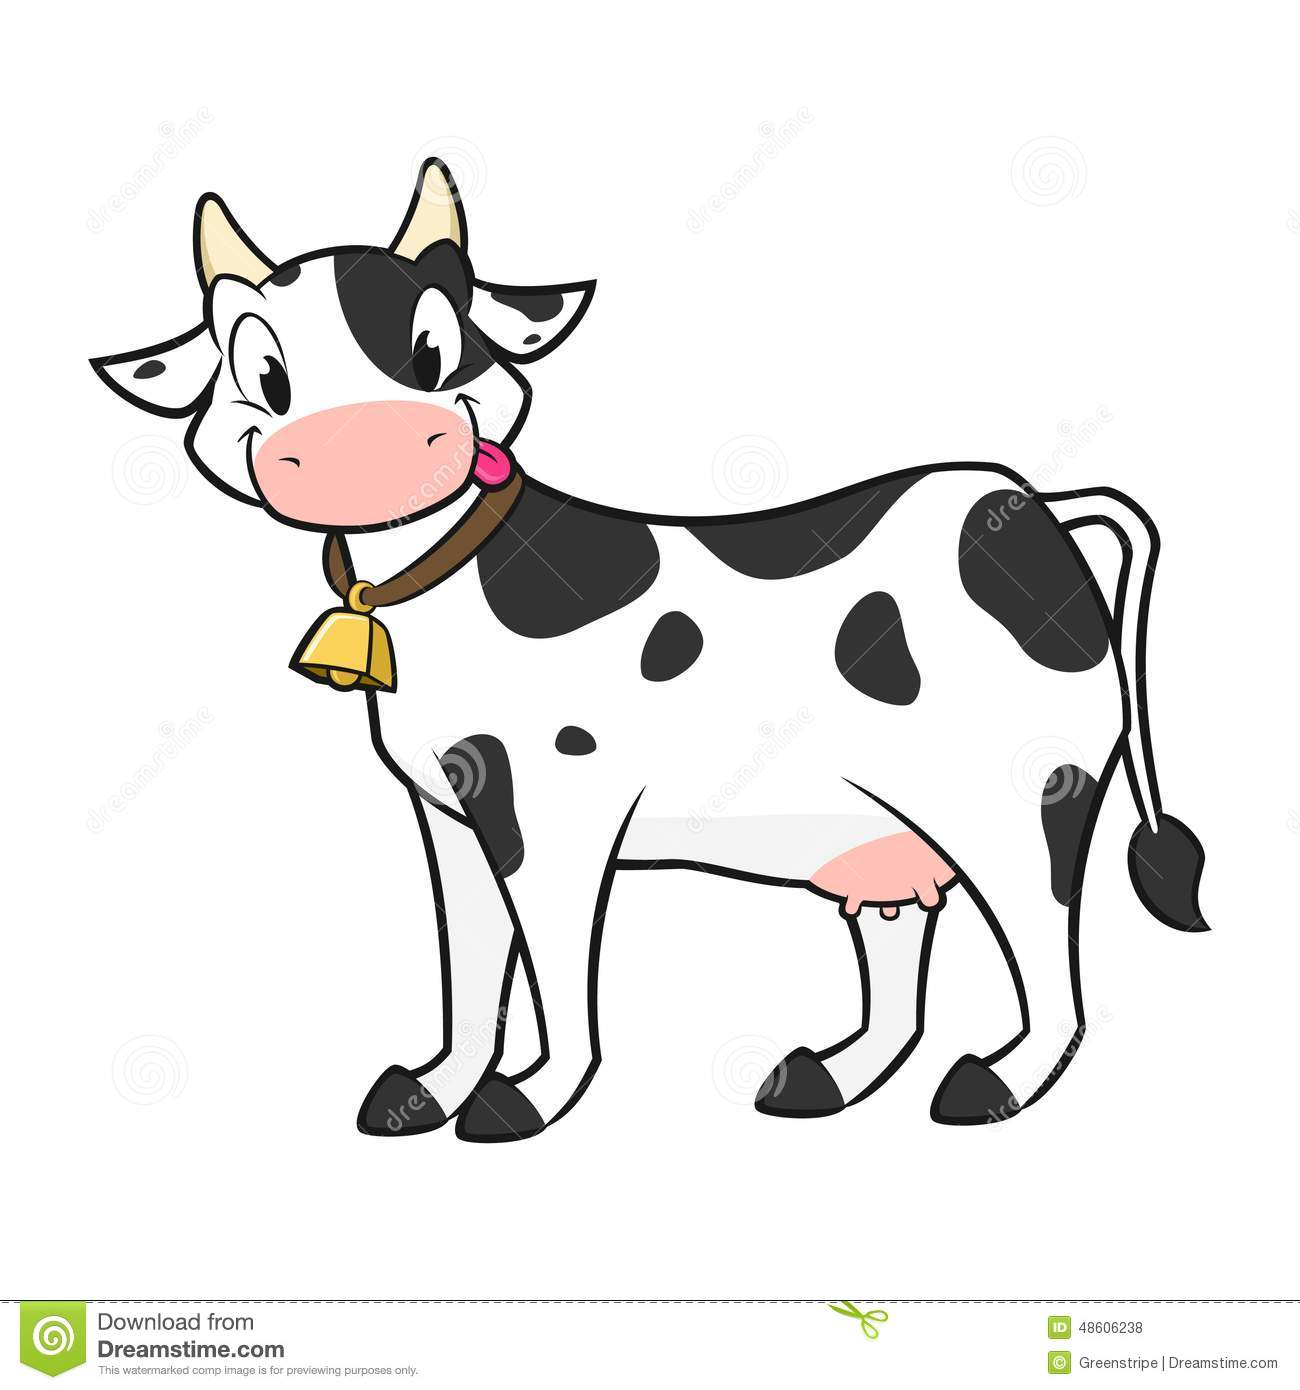 Vache dessin anim illustration de vecteur illustration du amical 48606238 - Dessin de vache ...